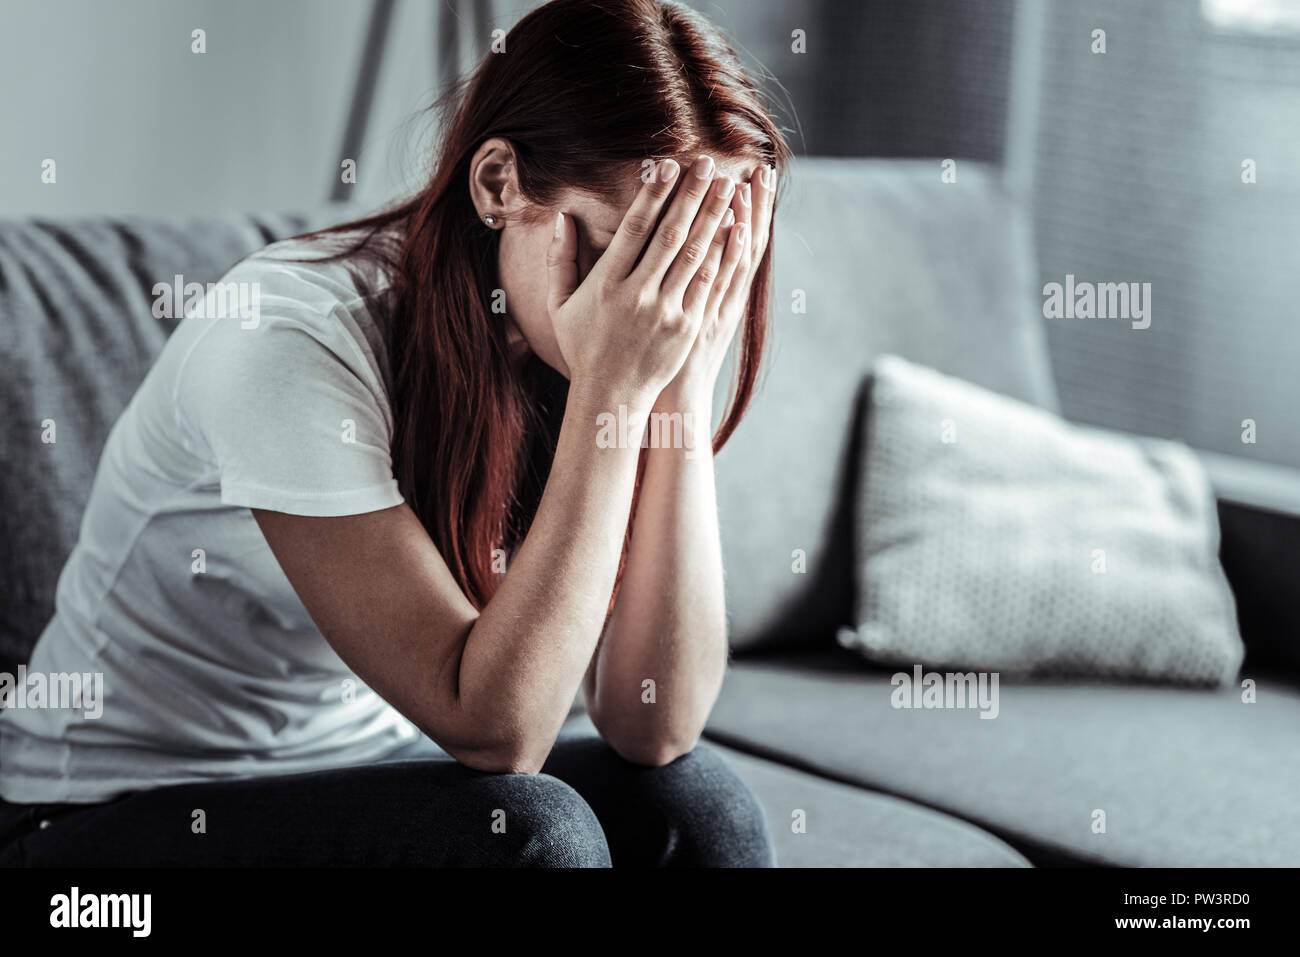 Upset girl being in deep depression - Stock Image